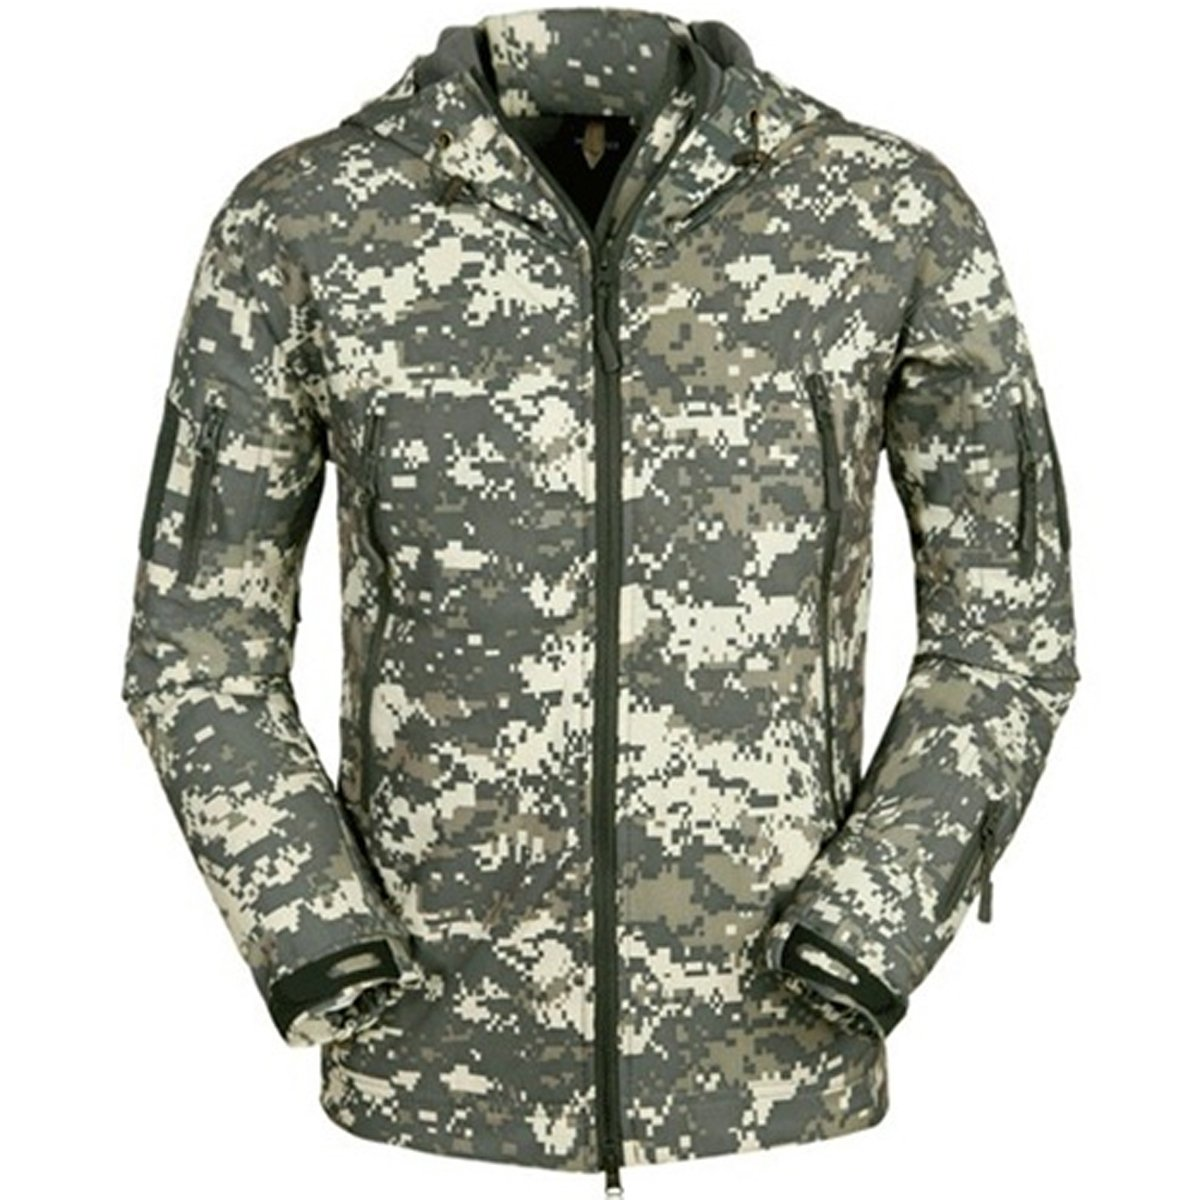 Eglemall Men's Outdoor Hunting Soft Shell Waterproof Tactical Fleece Lined Jackets